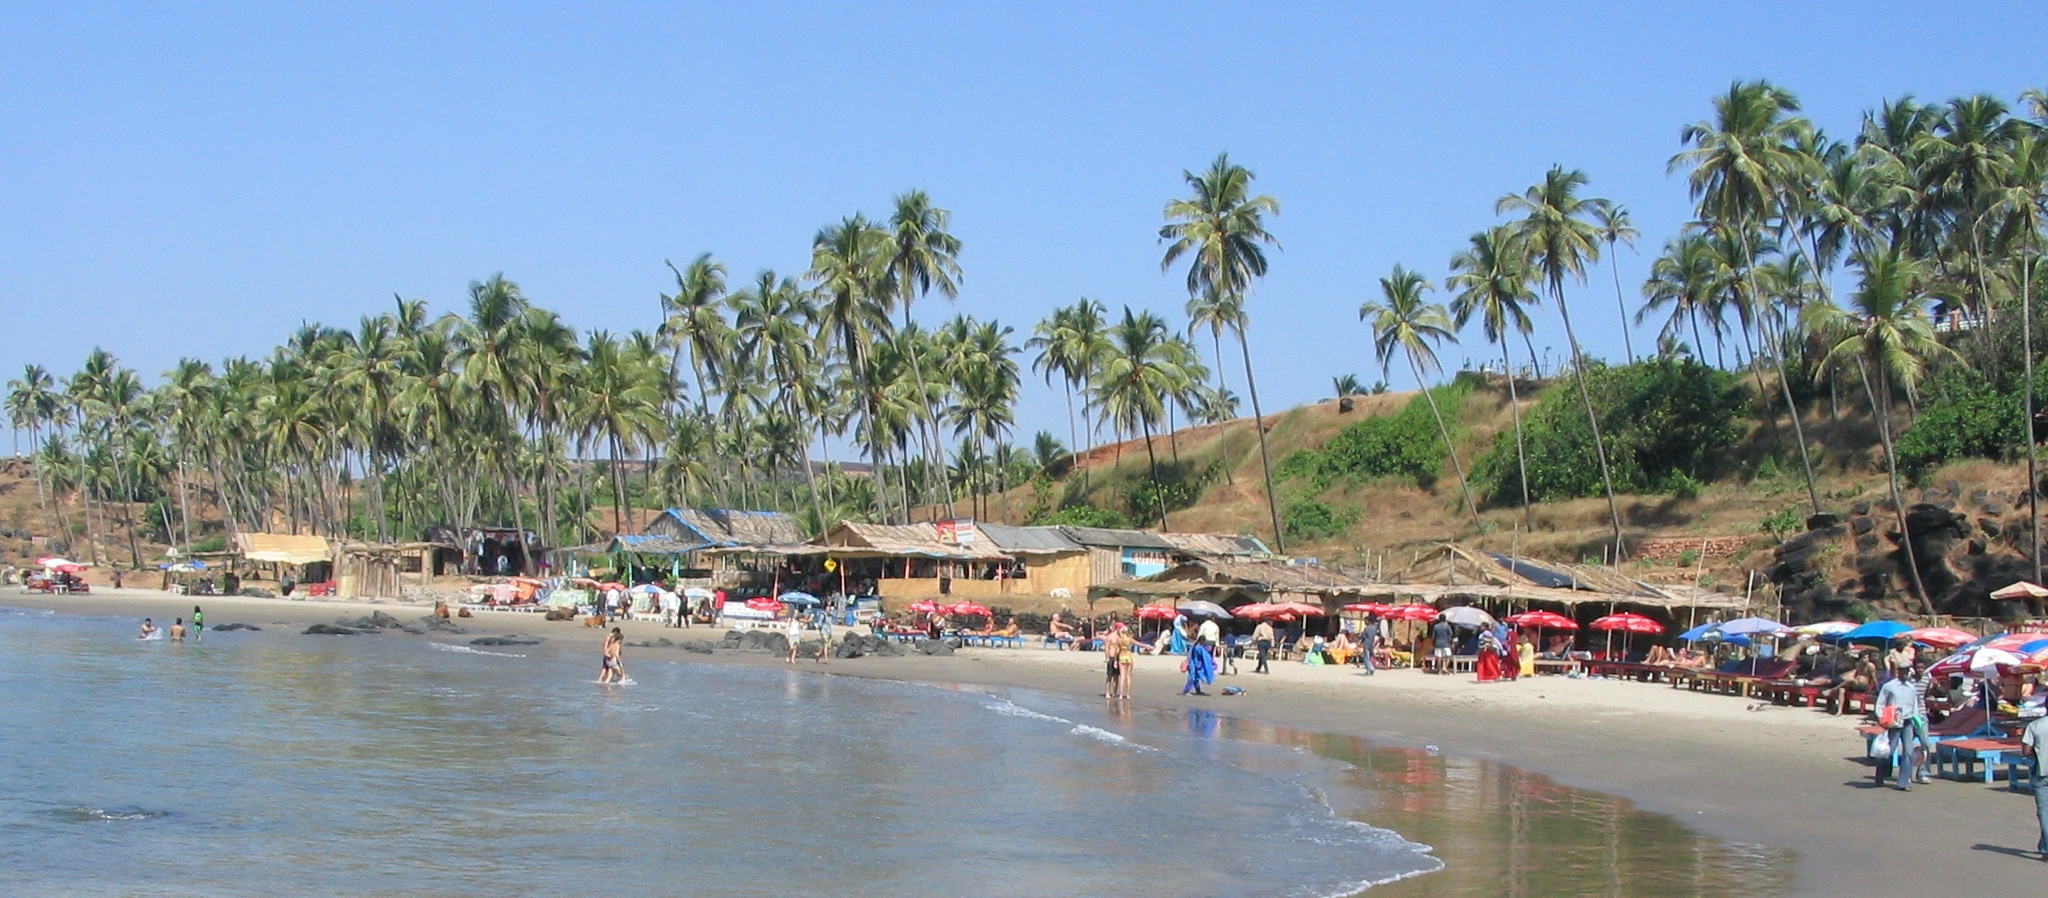 What Makes Goa The Most Visited Destination In India?